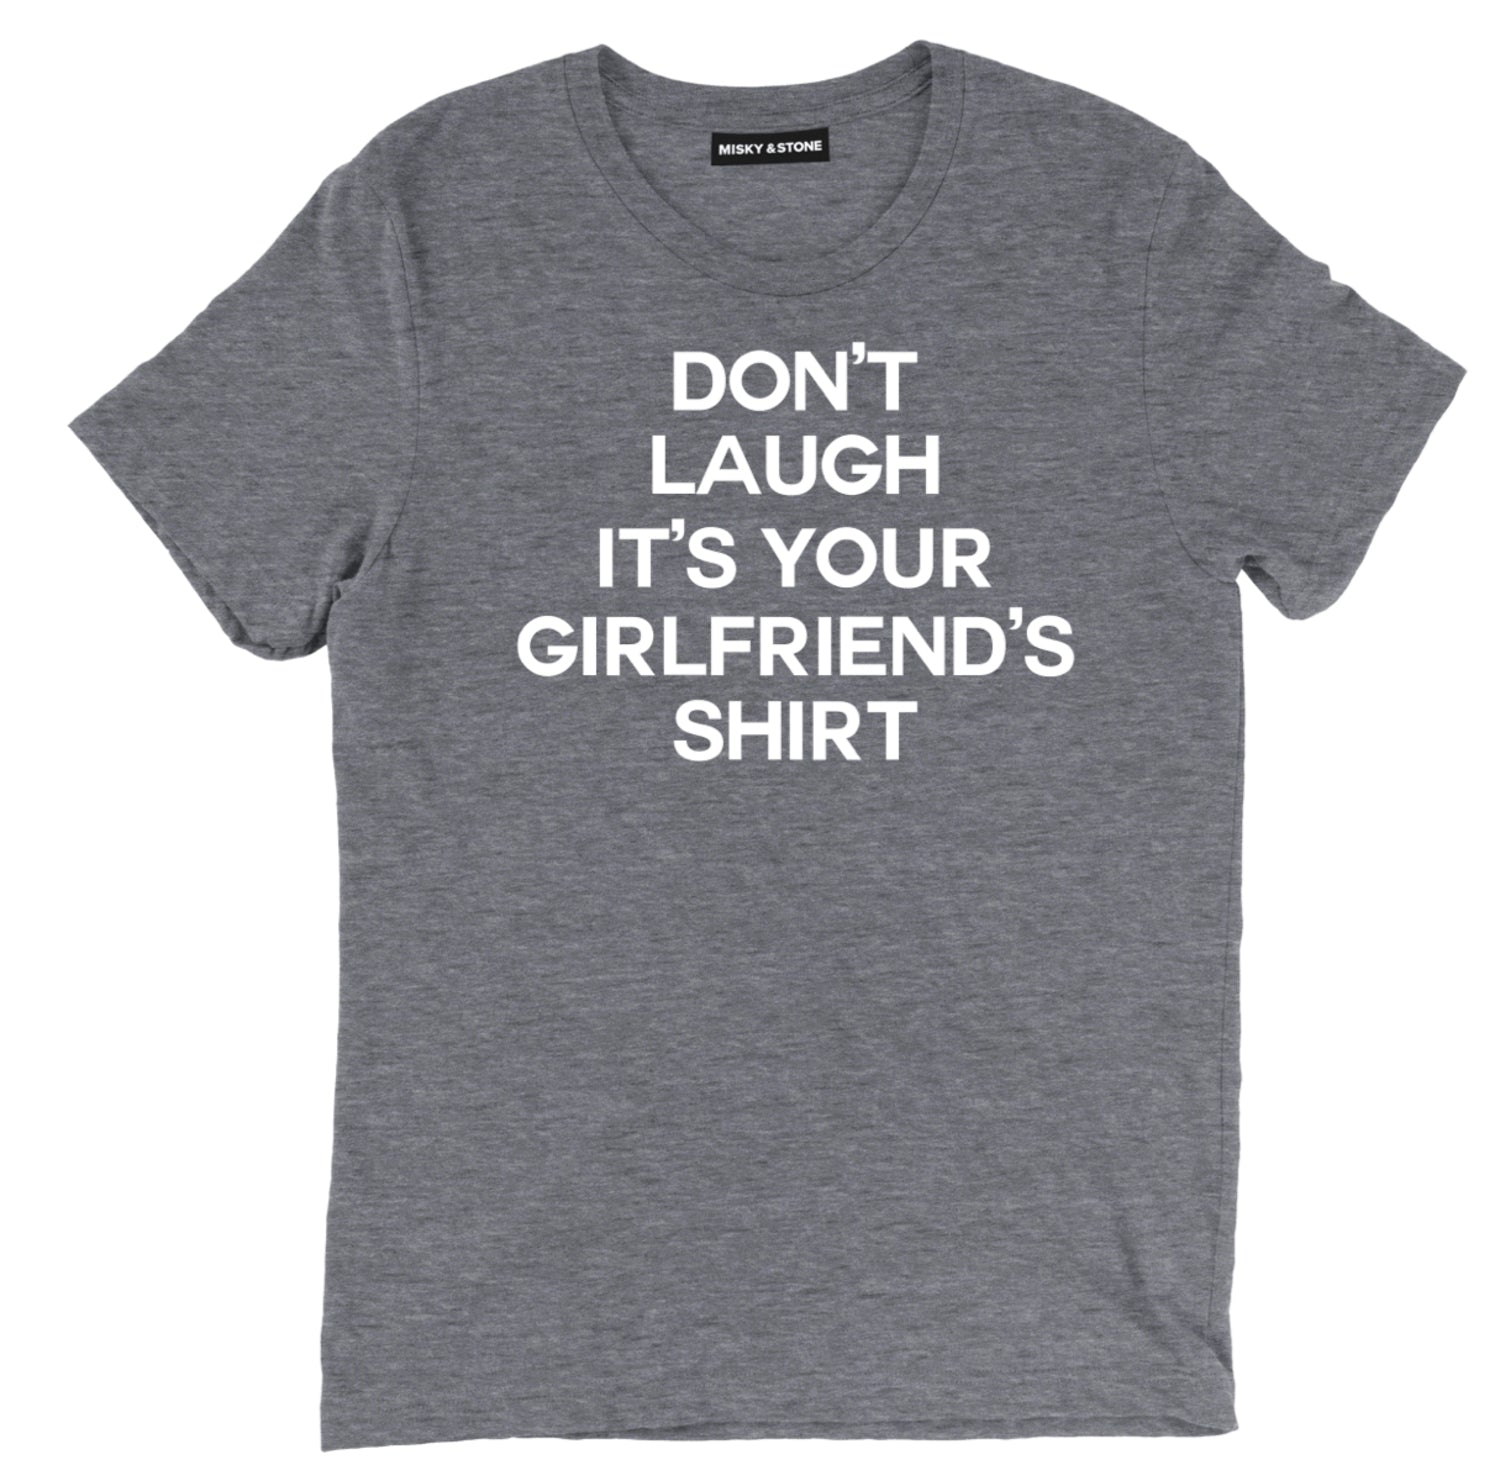 dont laugh its your girlfriends  tee sarcastic t shirts, dont laugh sarcastic shirts, funny your gorlfriends sarcastic tee shirts, sarcastic tees, sarcastic t shirt sayings, sarcastic t shirts quotes, funny sarcastic t shirts,